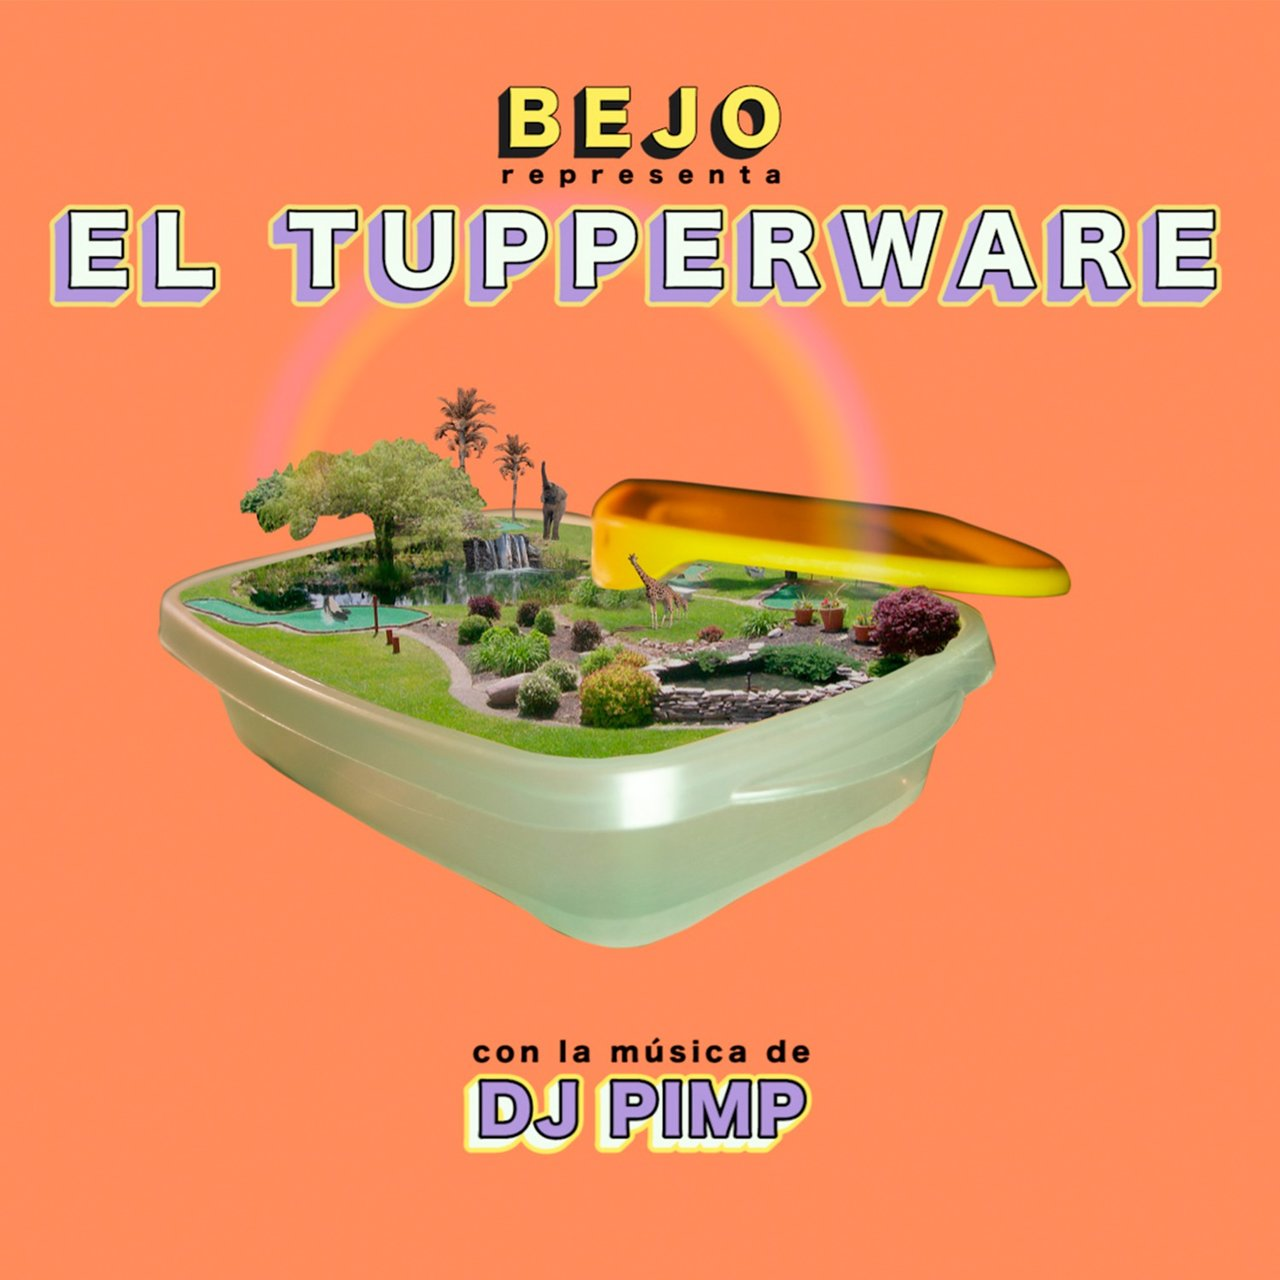 El Tupperware